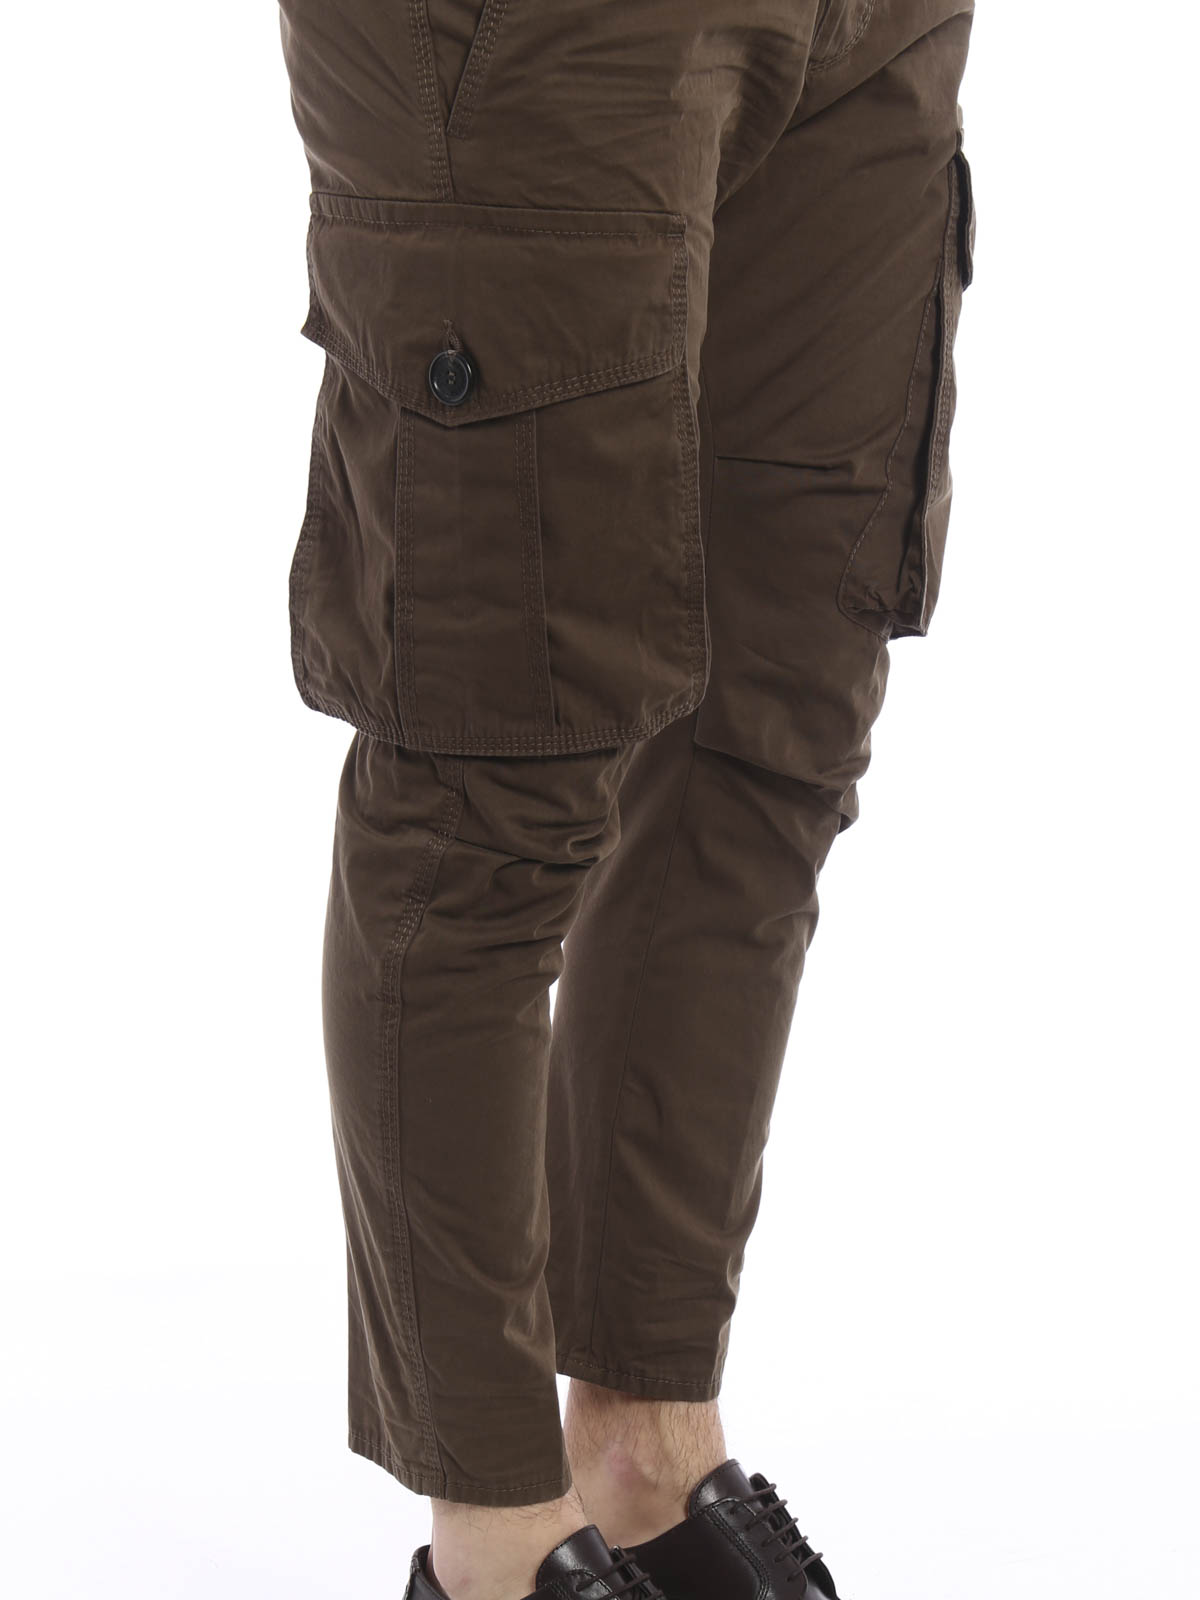 Apr 20, · Pants too long in the crotch: what can be done? Discussion in ' but the crotch is too long. The waist sits comfortably, and the leg length is right, but the crotch hangs down too low. They also seem a bit baggy in the butt. Pants too long in the crotch: what can .